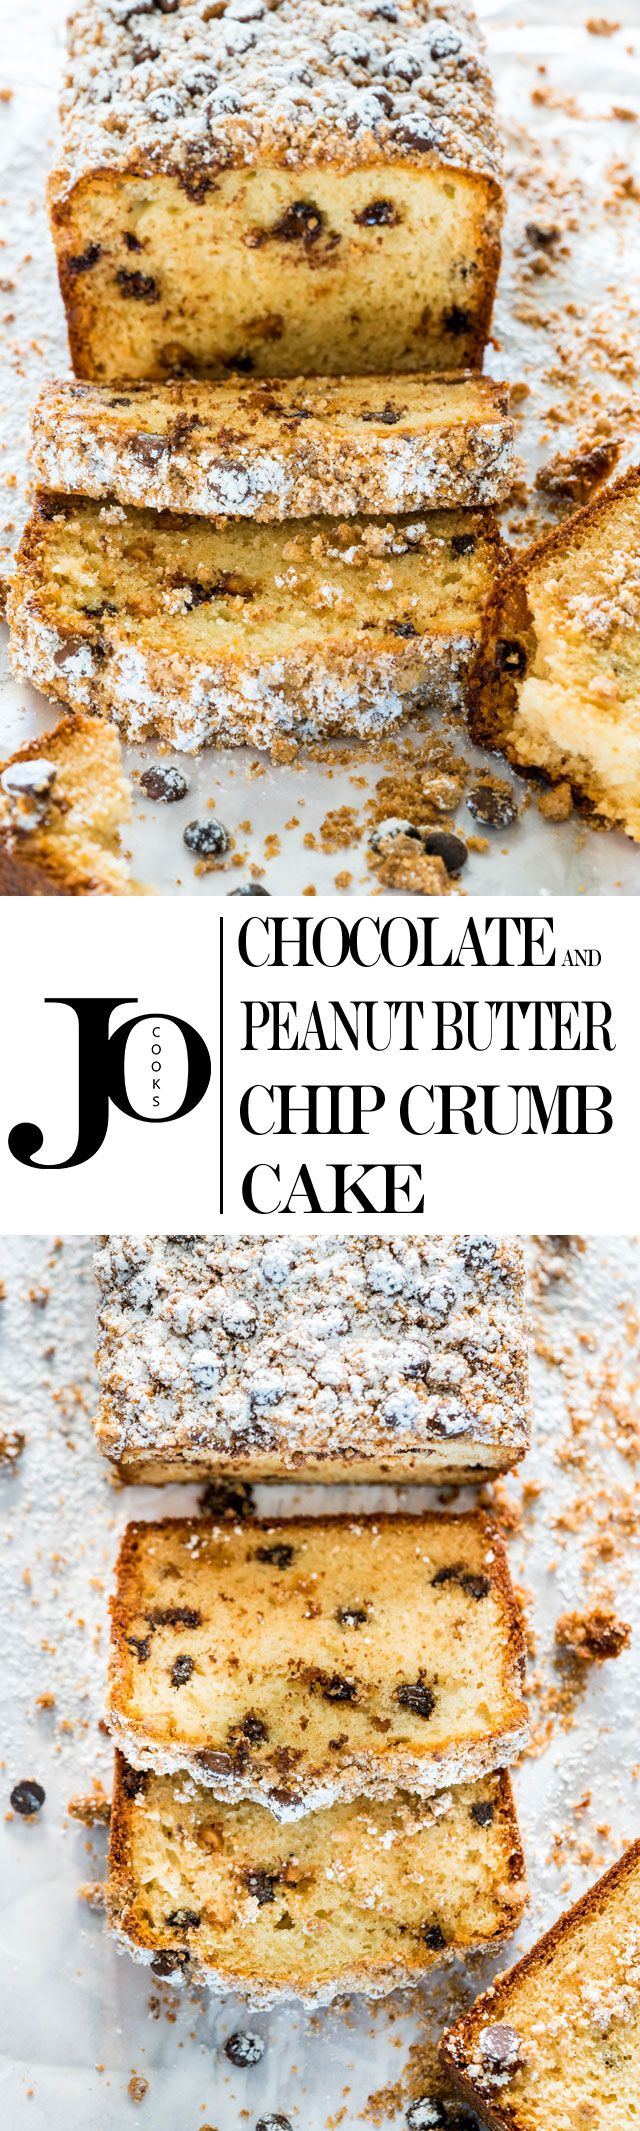 Chocolate and Peanut Butter Chip Crumb Cake - the answer to your brunch or breakfast! Delicious crumb cake loaded with chocolate and peanut butter chips!